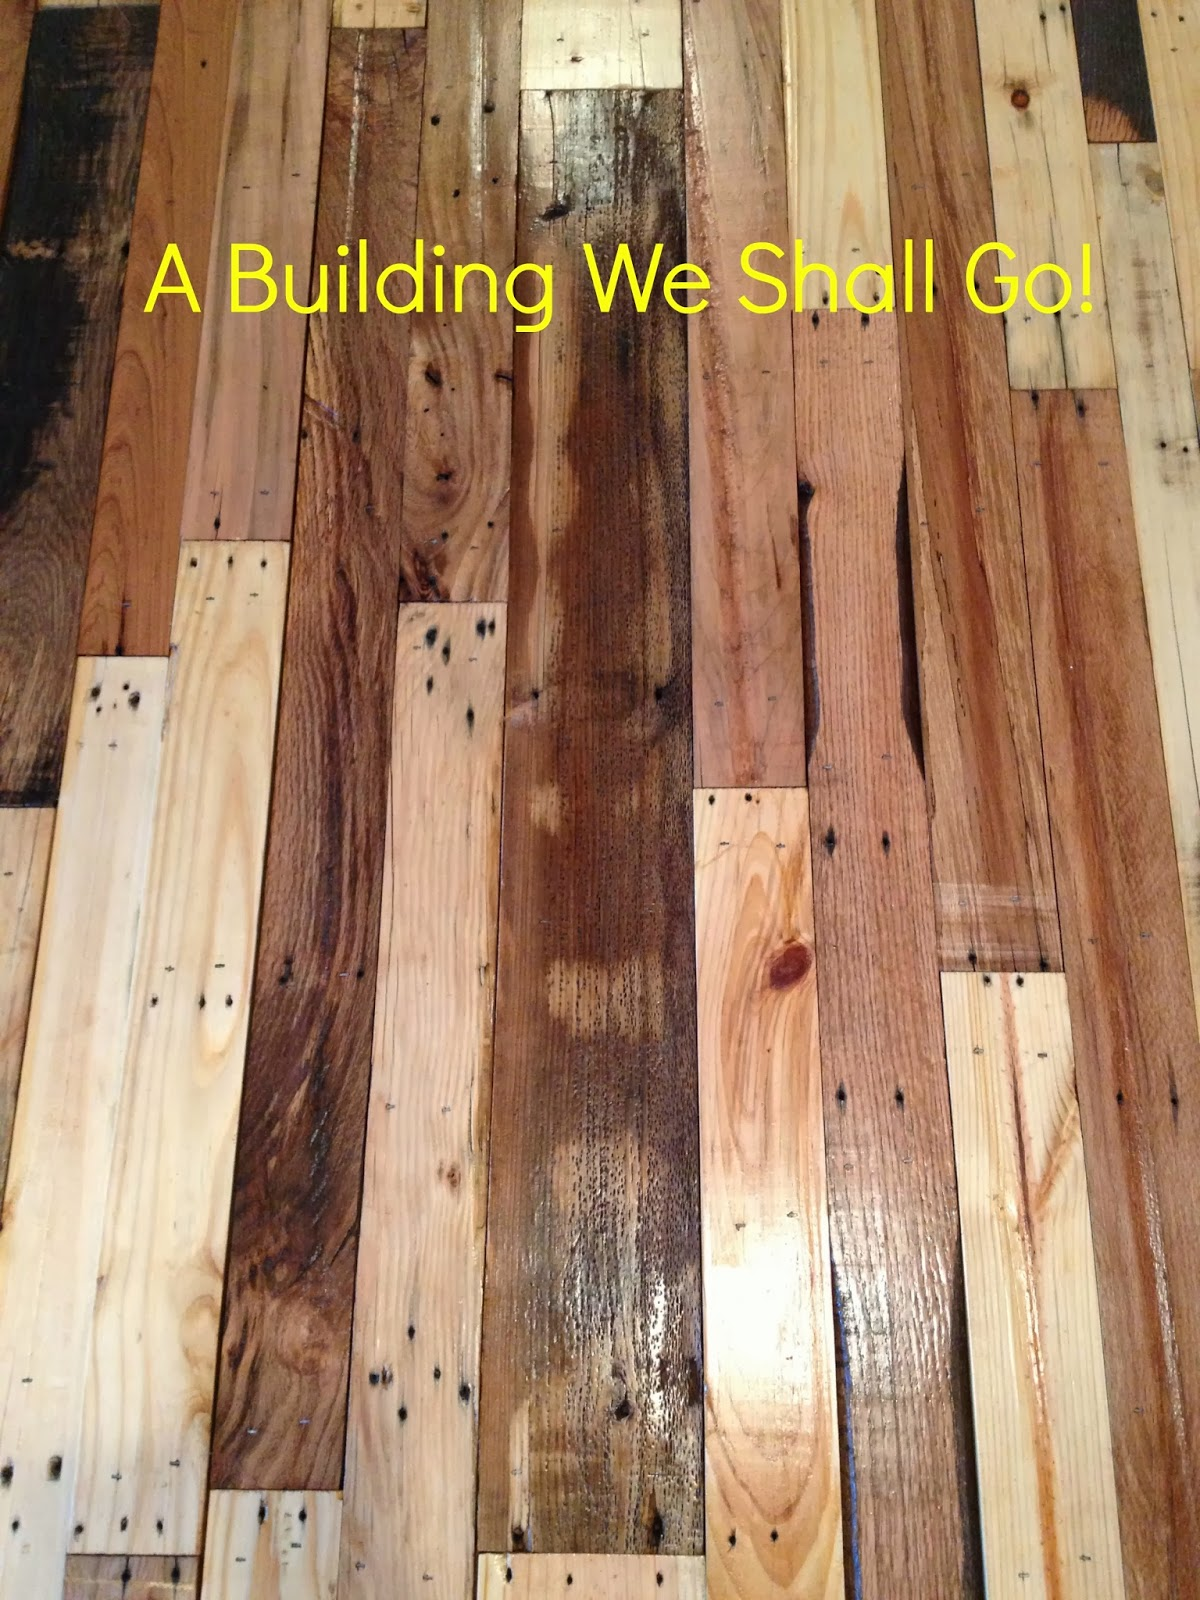 The Art Of Pallet Wood Flooring - A Building We Shall Go!: The Art Of Pallet Wood Flooring